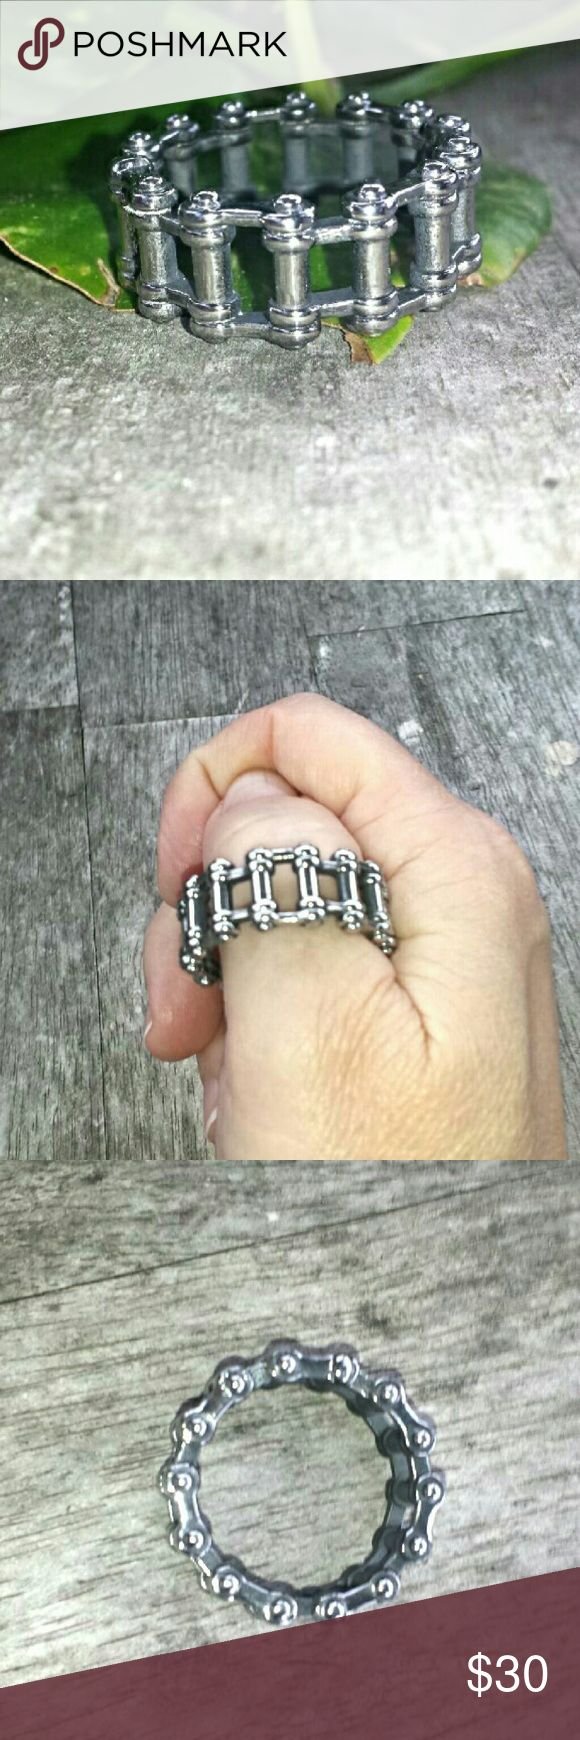 """Stainless Steel Chain Link/Biker Statement Ring This unusual ring measures 1/2"""" wide. It's made of chain links and is very sturdy. Makes a great gift! #0818 Accessories Jewelry"""